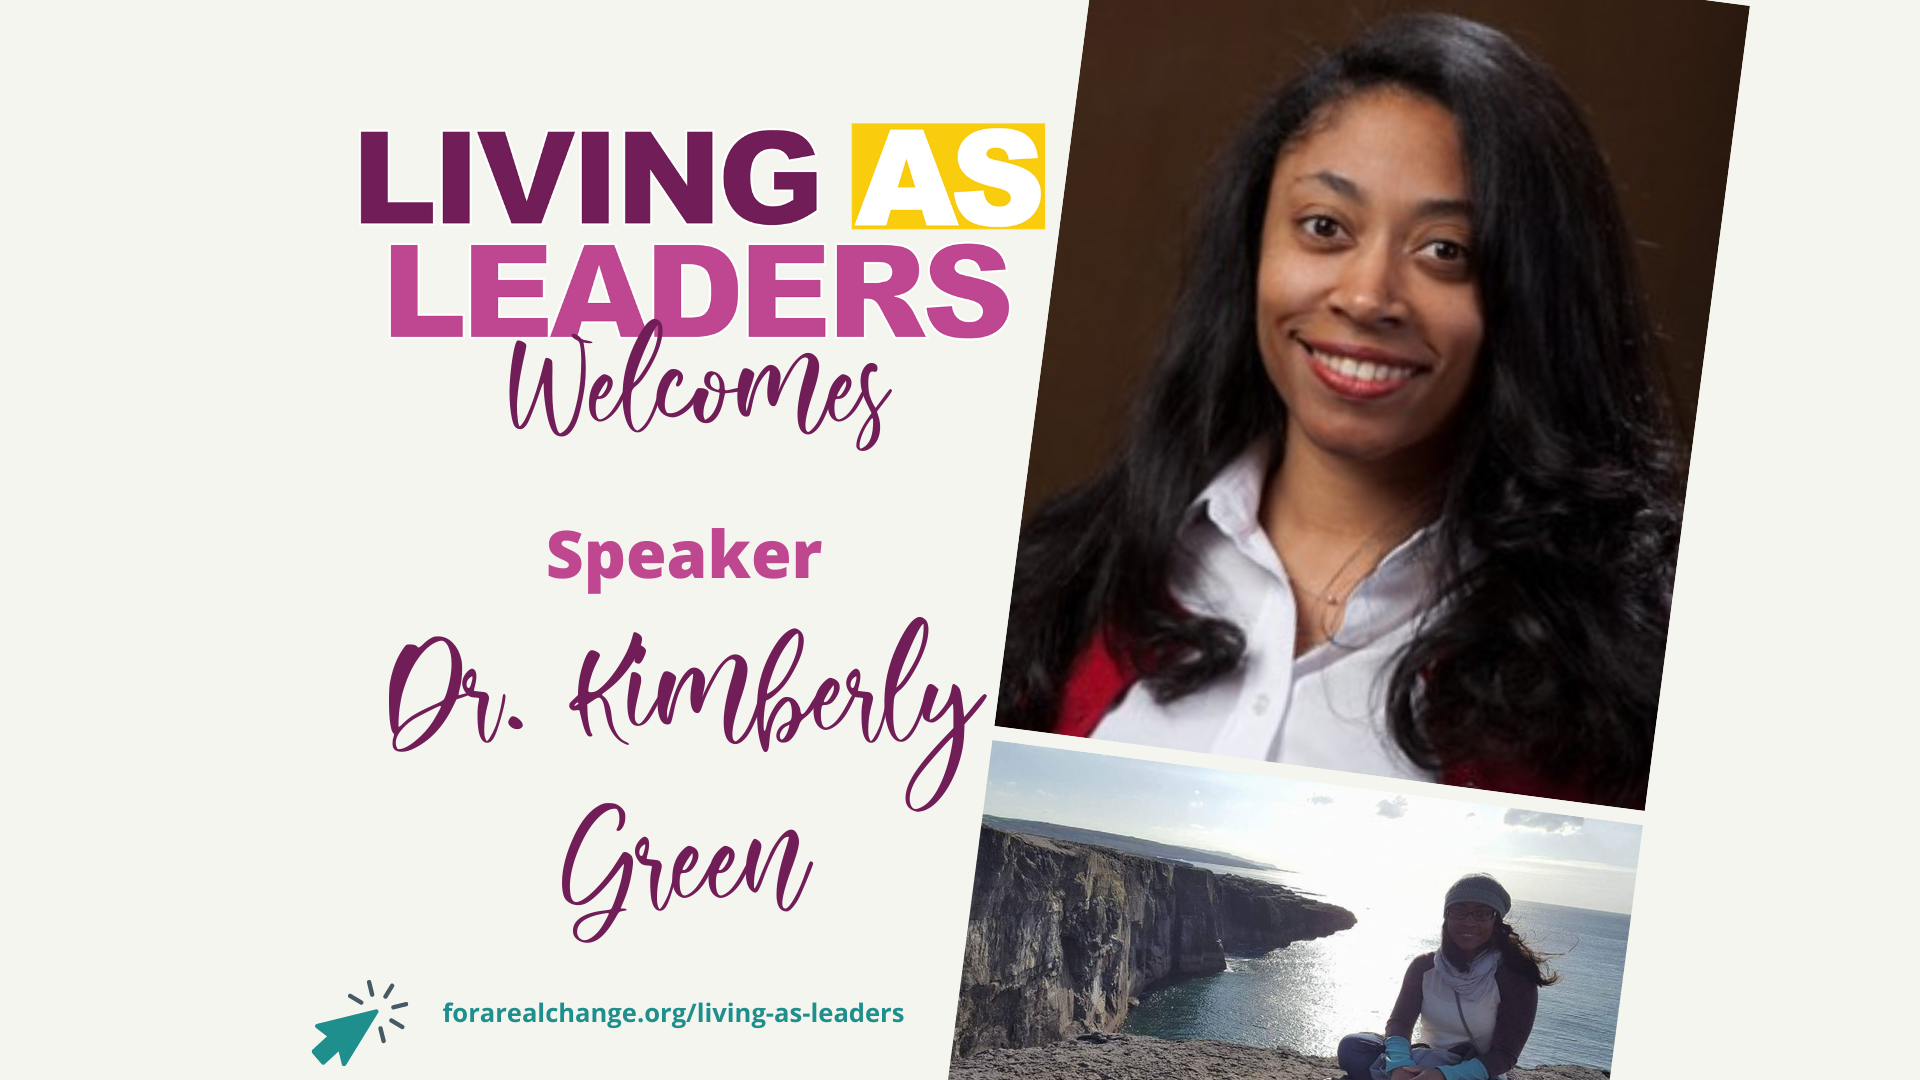 Dr. Kimberly Green